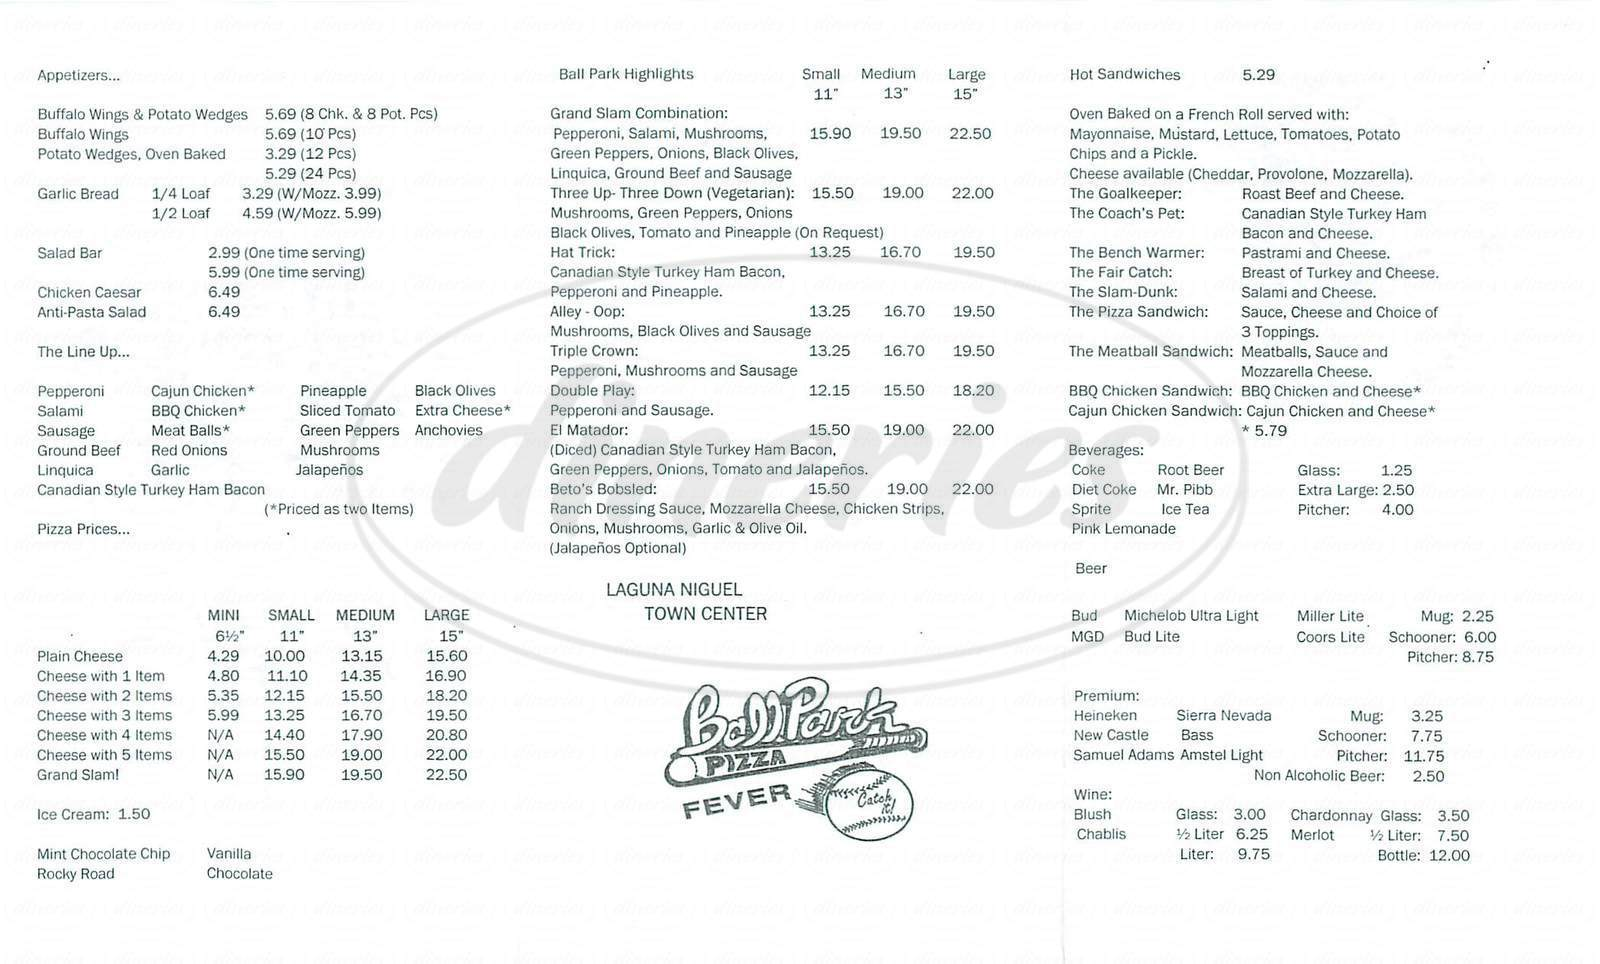 Ball Park Pizza Menu - Laguna Niguel - Dineries